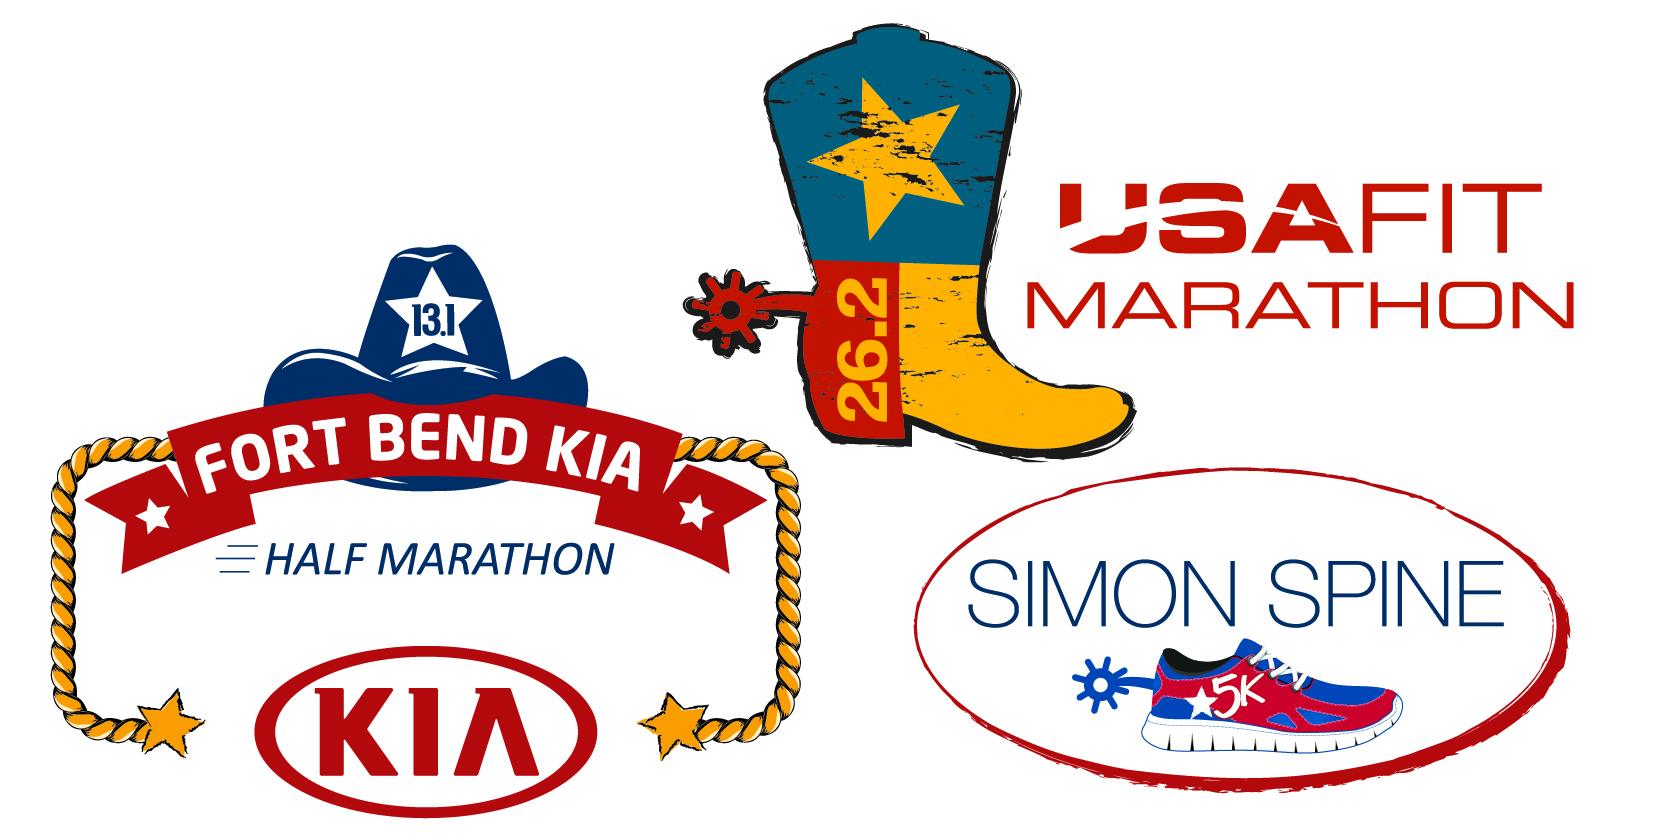 2019 USA Fit Marathon, Fort Bend Kia Half Marathon, Simon Spine 5K